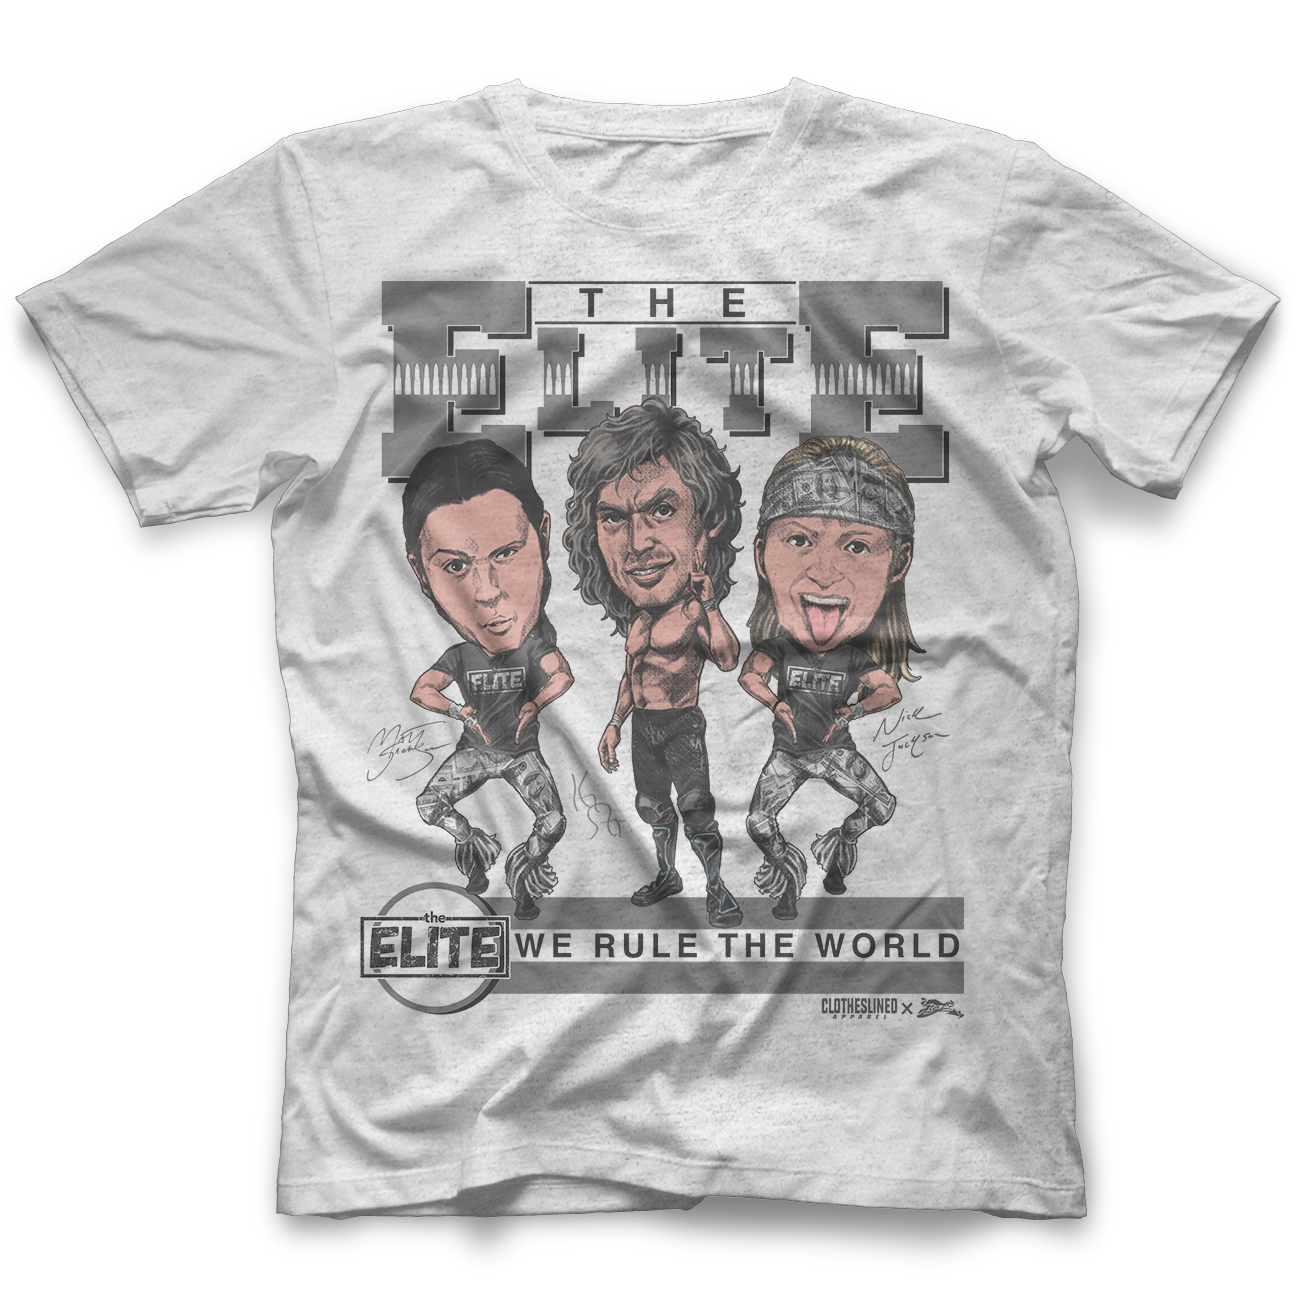 The Elite - Clotheslined X Notz